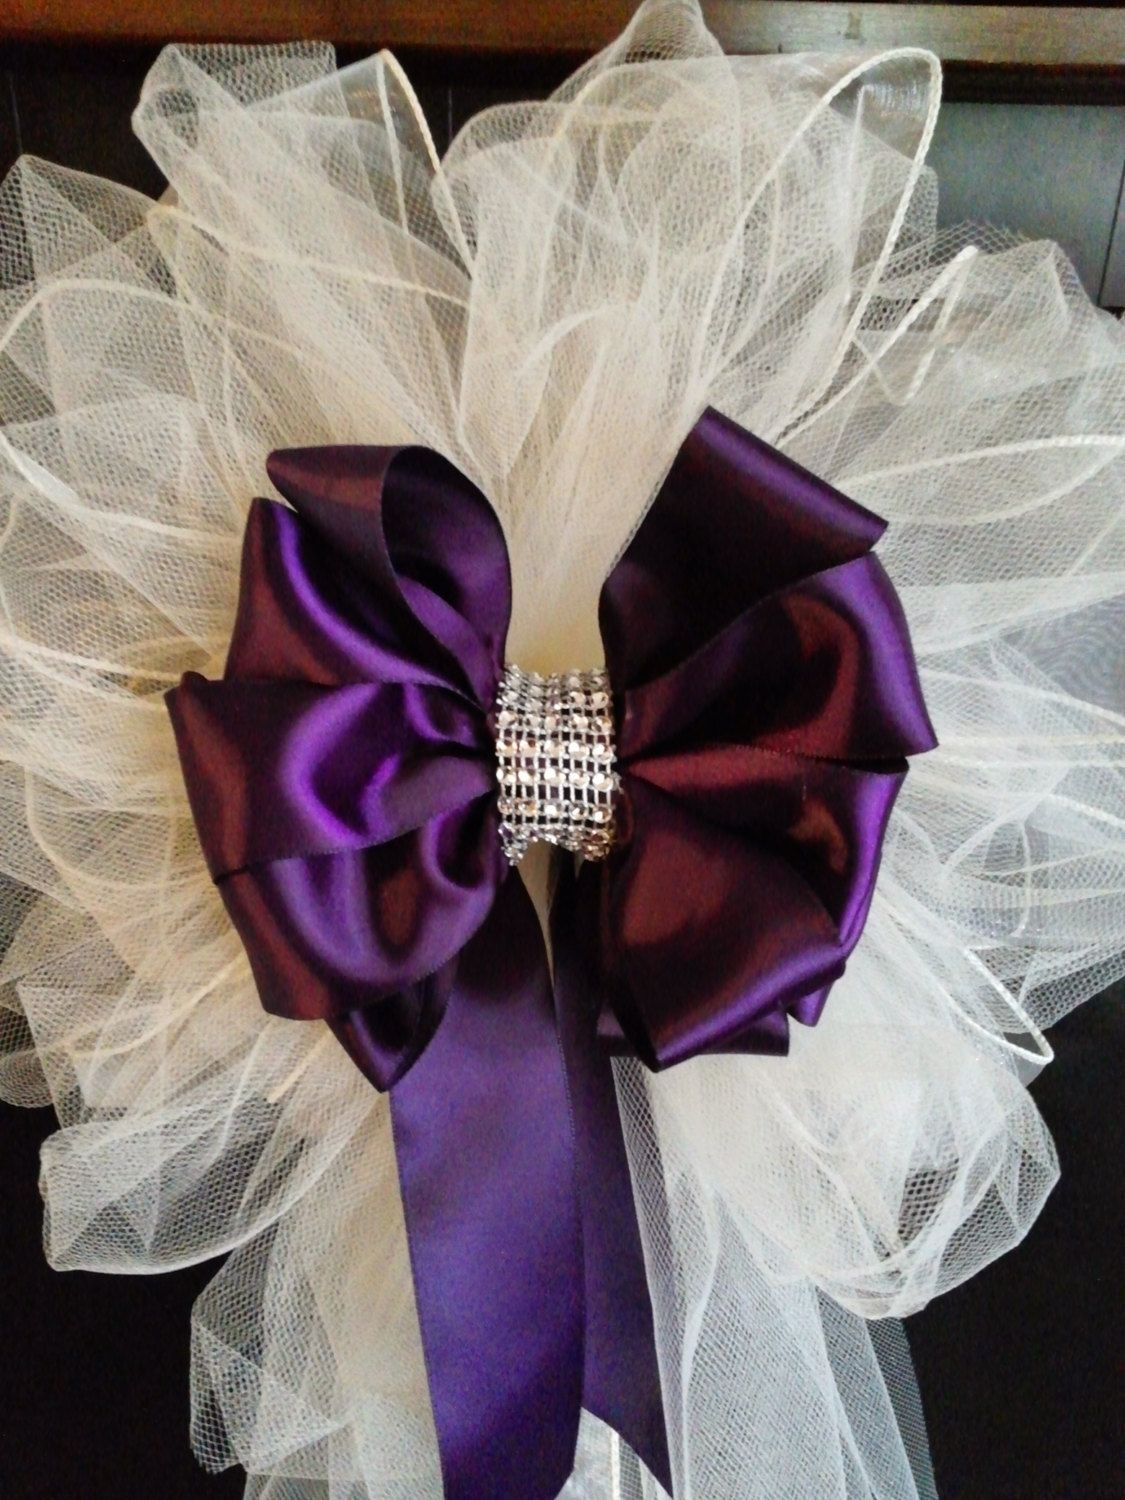 Wedding pew bows any color satin and tulle bows with streamers and set of 10 wedding pew bows any color satin and tulle bows with bling wedding decorations church pew bows dark purple and ivory by asprettydoes on etsy junglespirit Choice Image